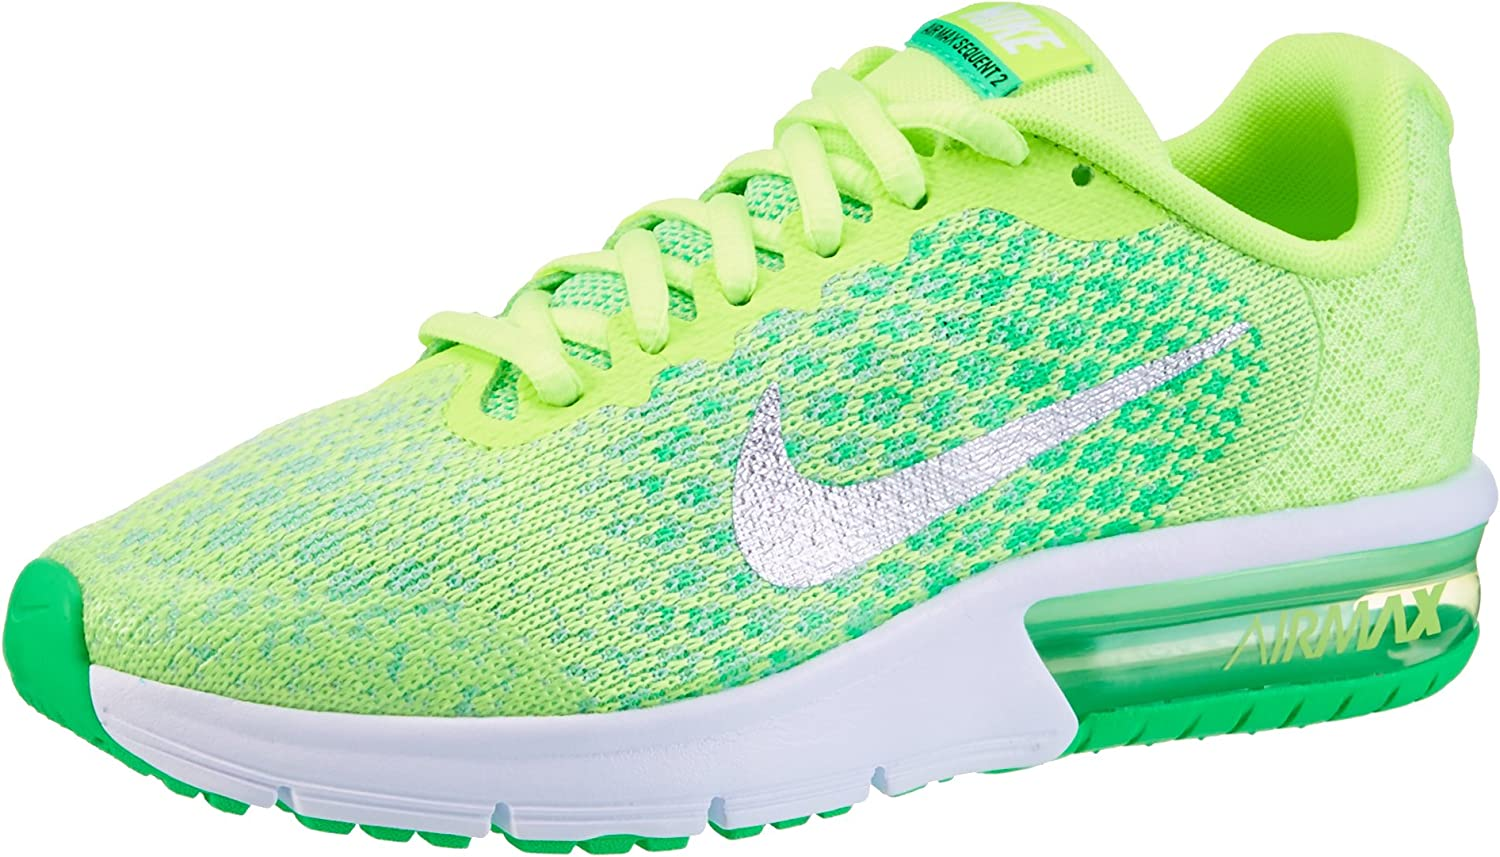 Nike Air Max Sequent 2 Chaussures de Running Fille, Vert